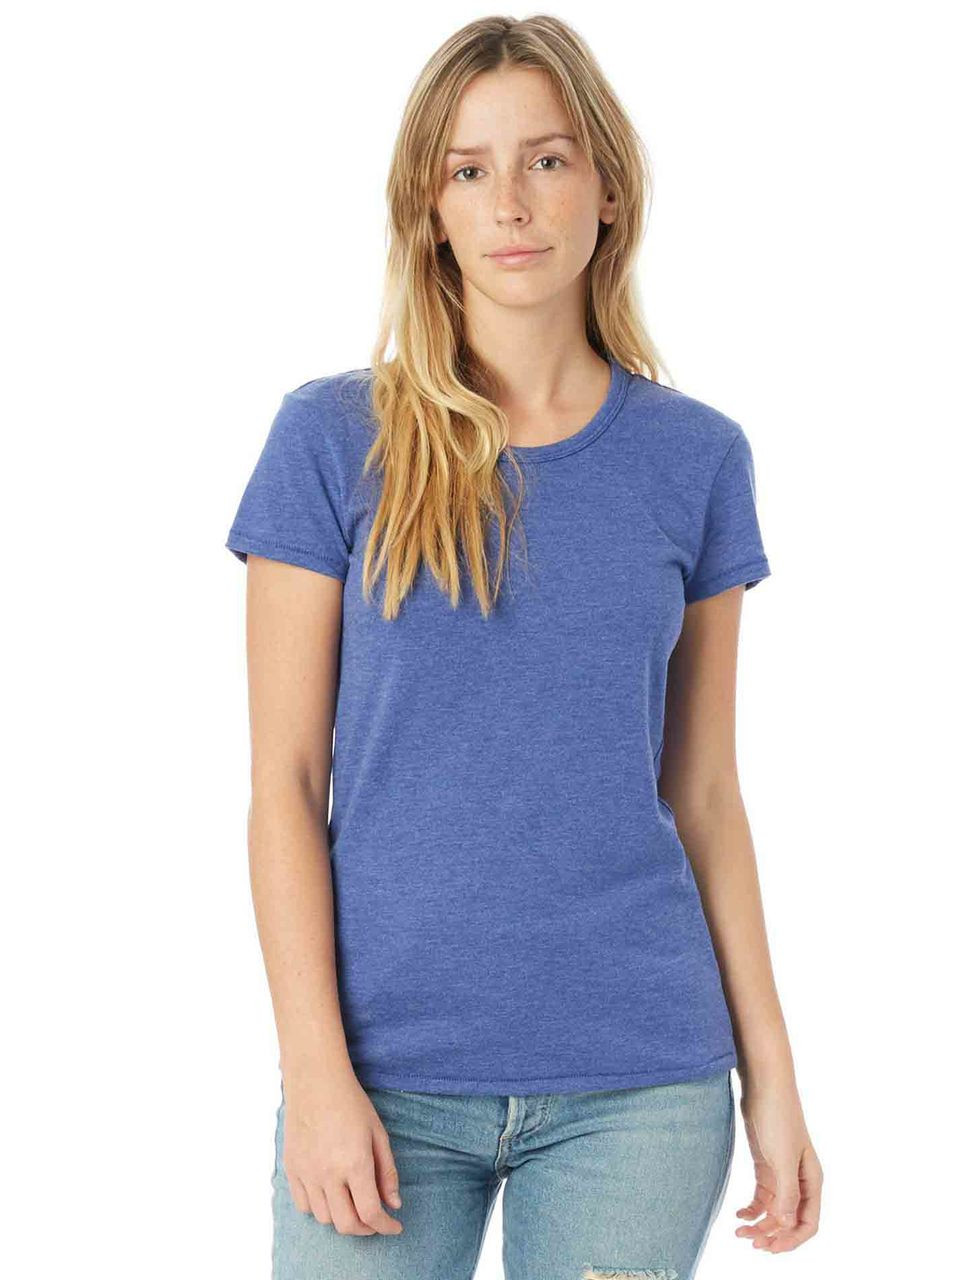 Vintage Royal - 05052BP Alternative Ladies' Vintage Jersey Keepsake T-Shirt | BlankClothing.ca